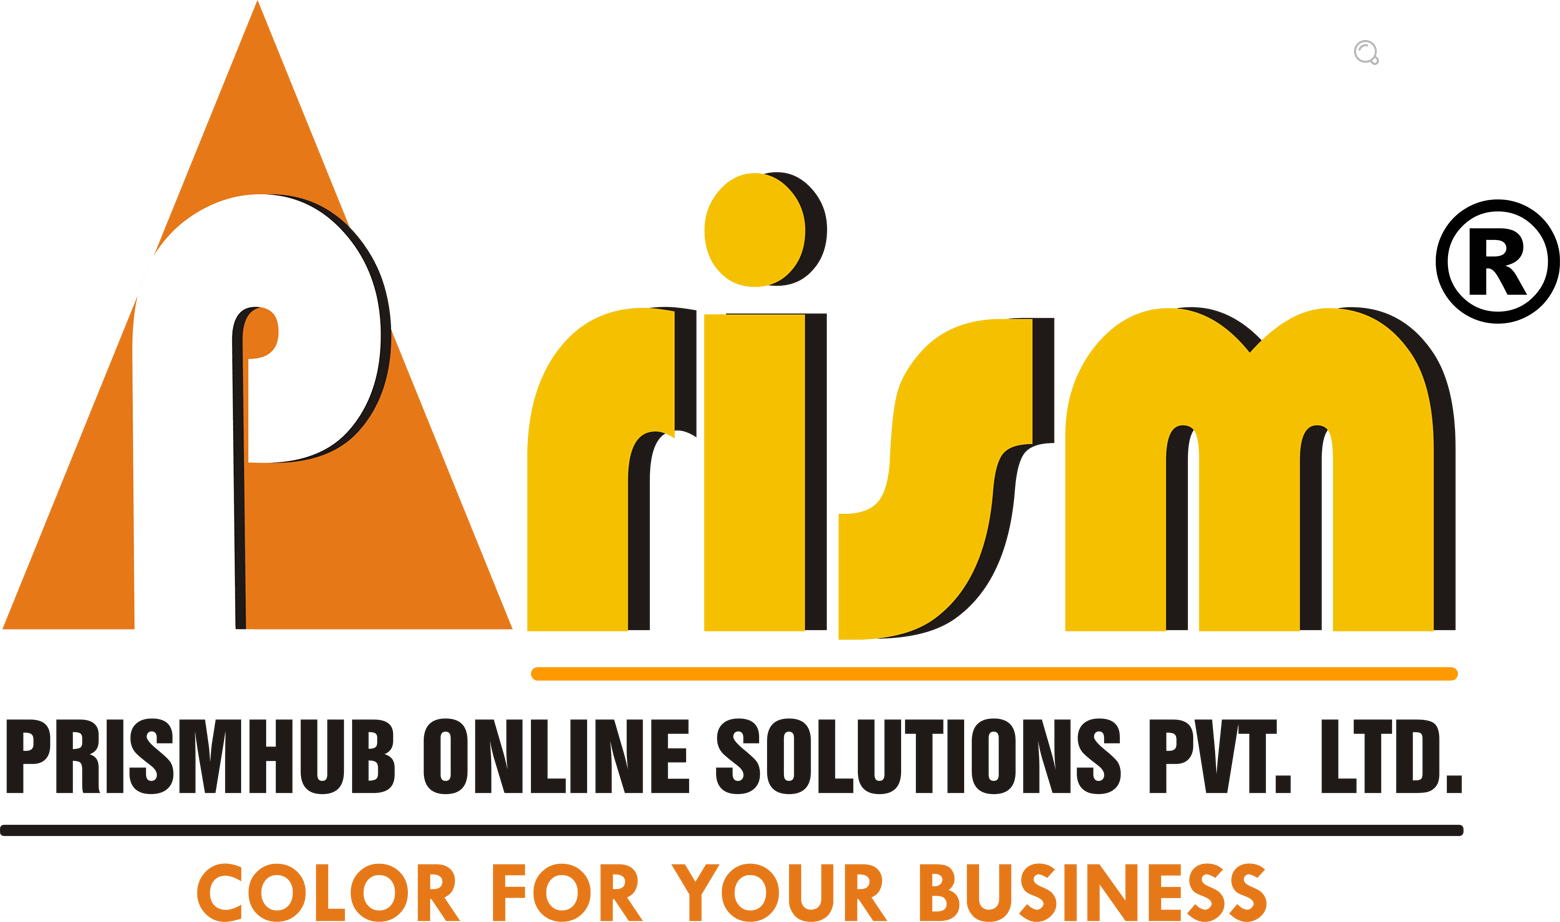 Welcome to Prismhub Online Solutions Pvt. Ltd